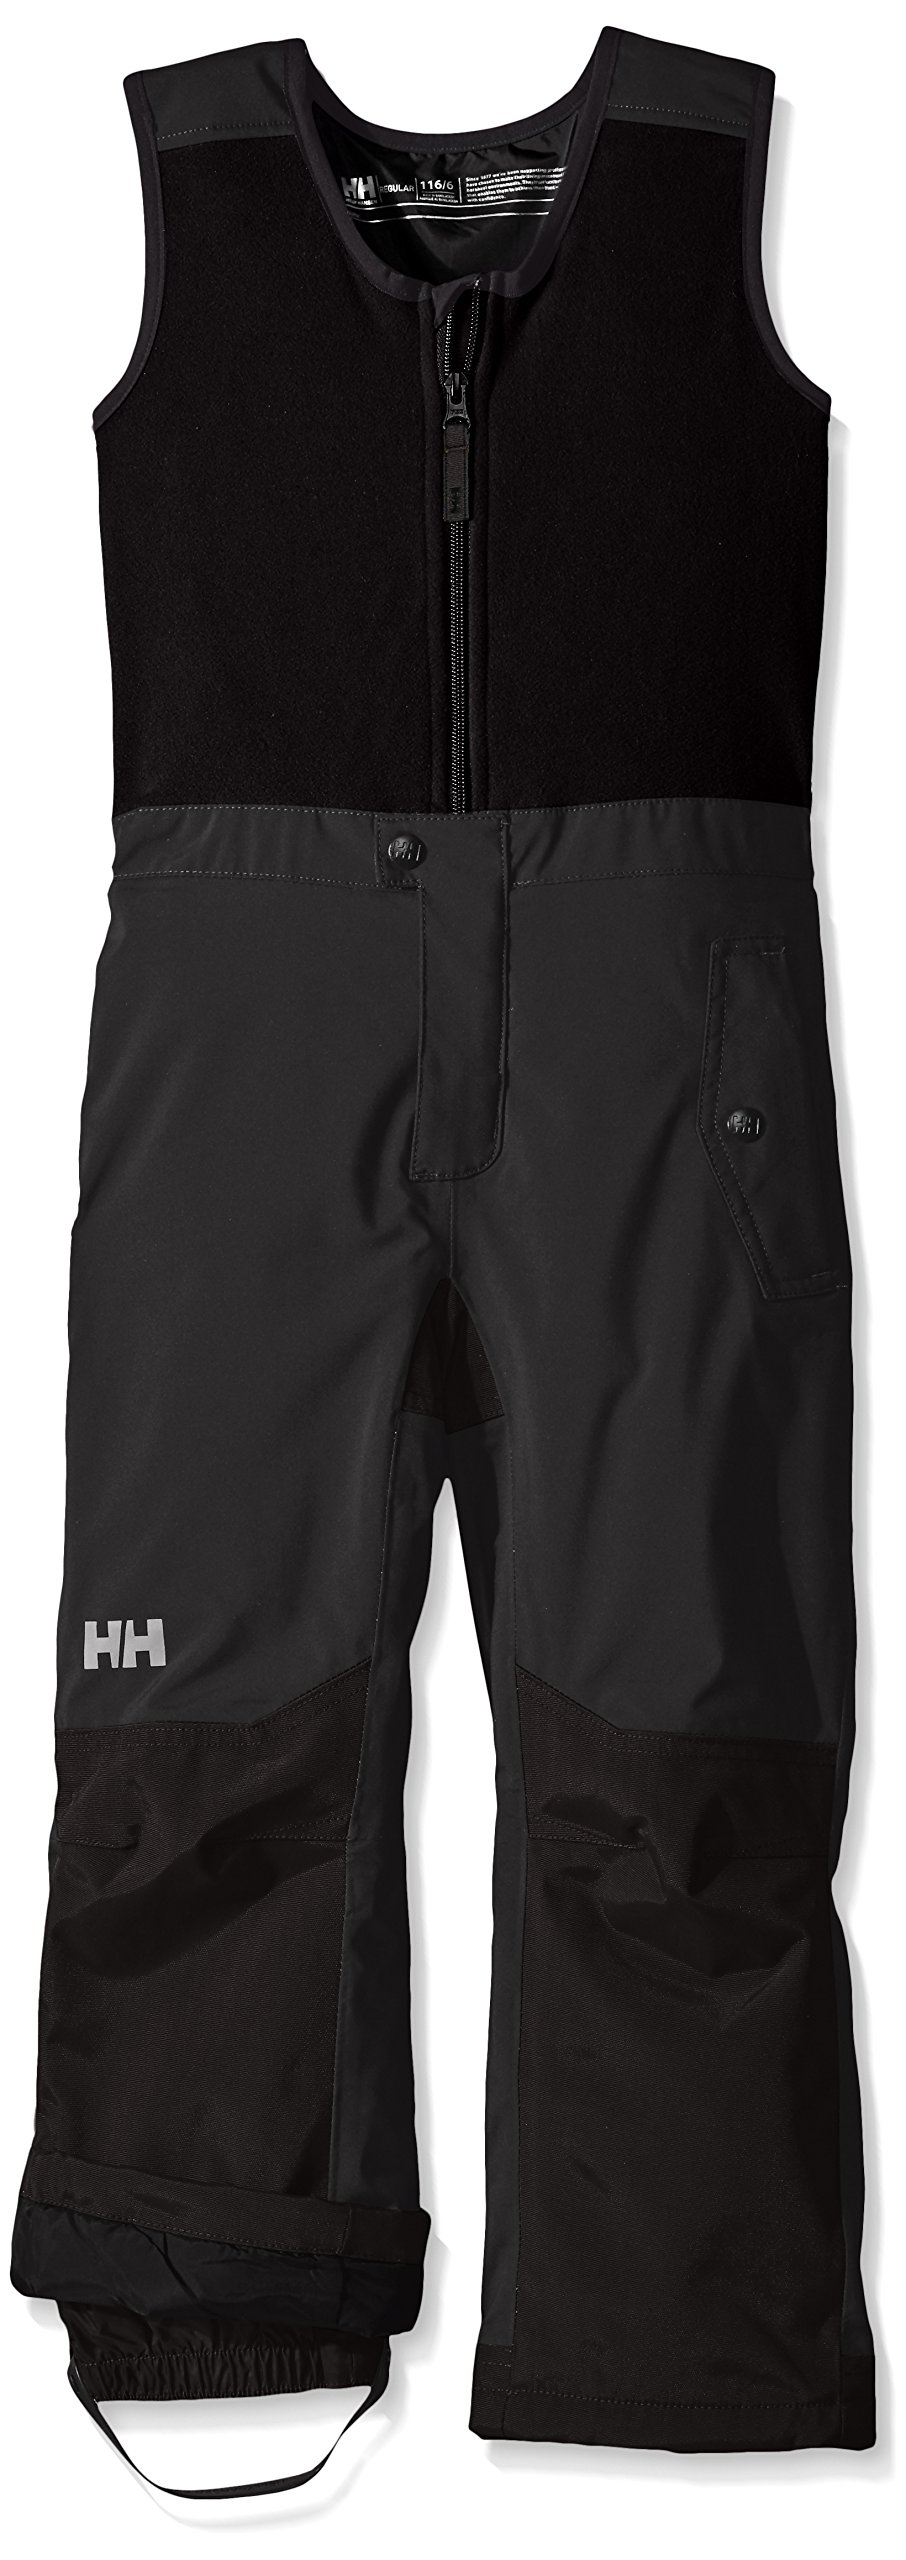 Helly Hansen Kids Powder Bib Pants, Ebony, Size 8 by Helly Hansen (Image #1)